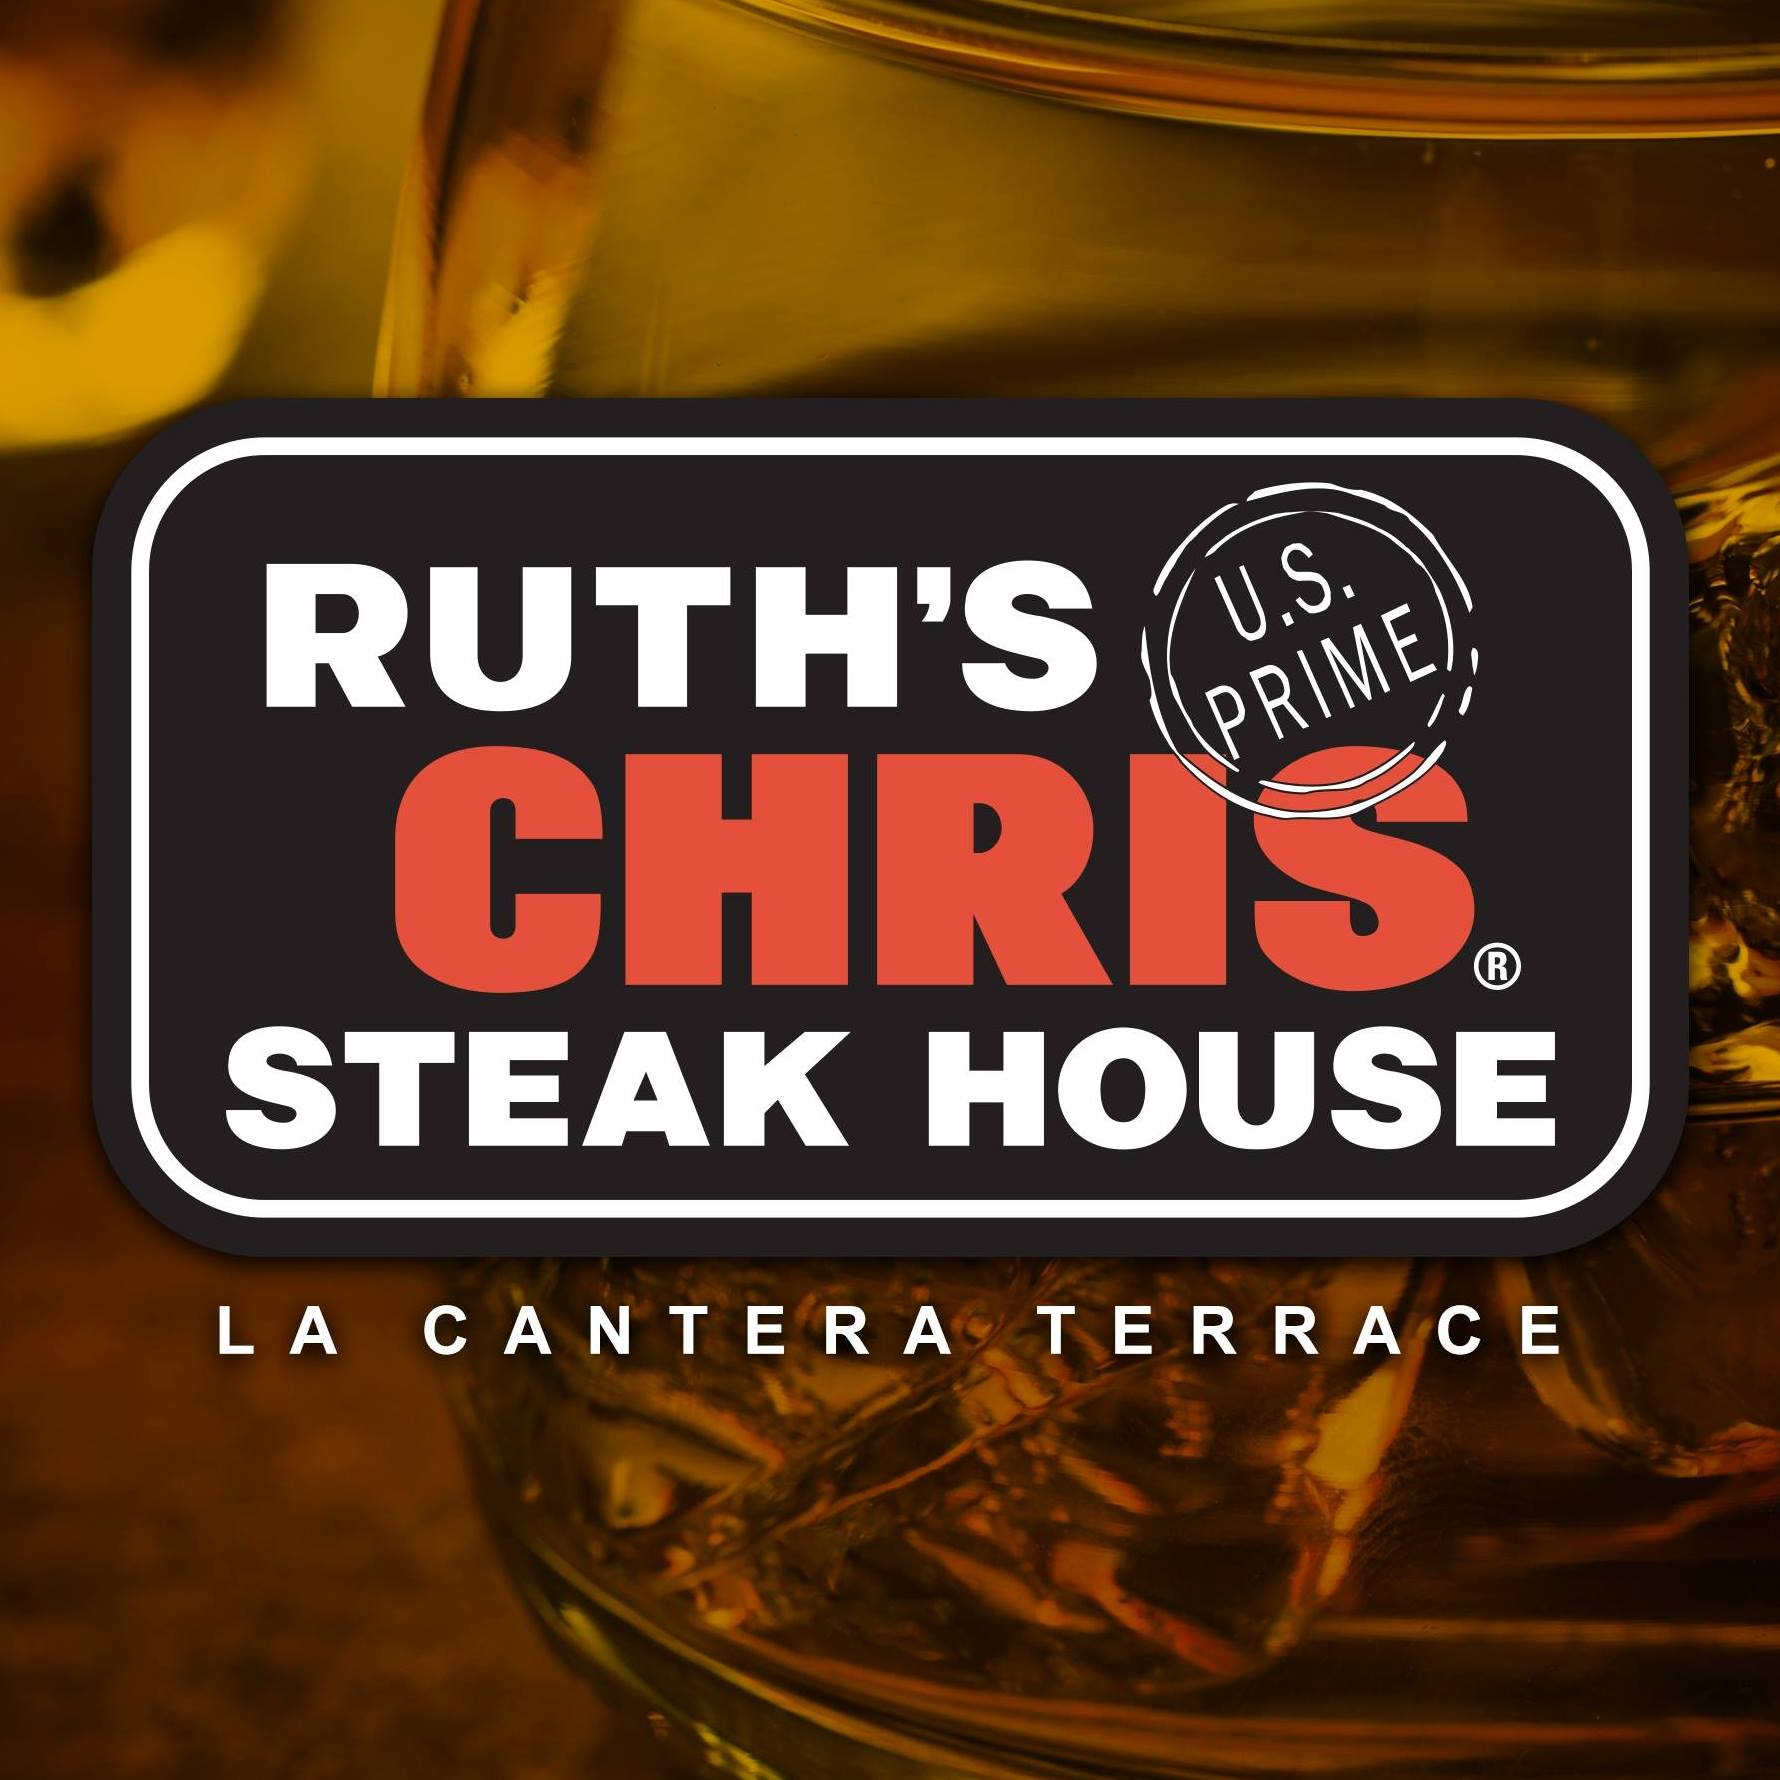 Ruth's Chris' Steakhouse - La Cantera Terrace - Dinner Only   17803 La Cantera Terrace Building #8, Suite #8110, San Antonio, 78256  P 210-538-8792    Ruth's Chris' Dinner Menu      Make a Reservation on OpenTable